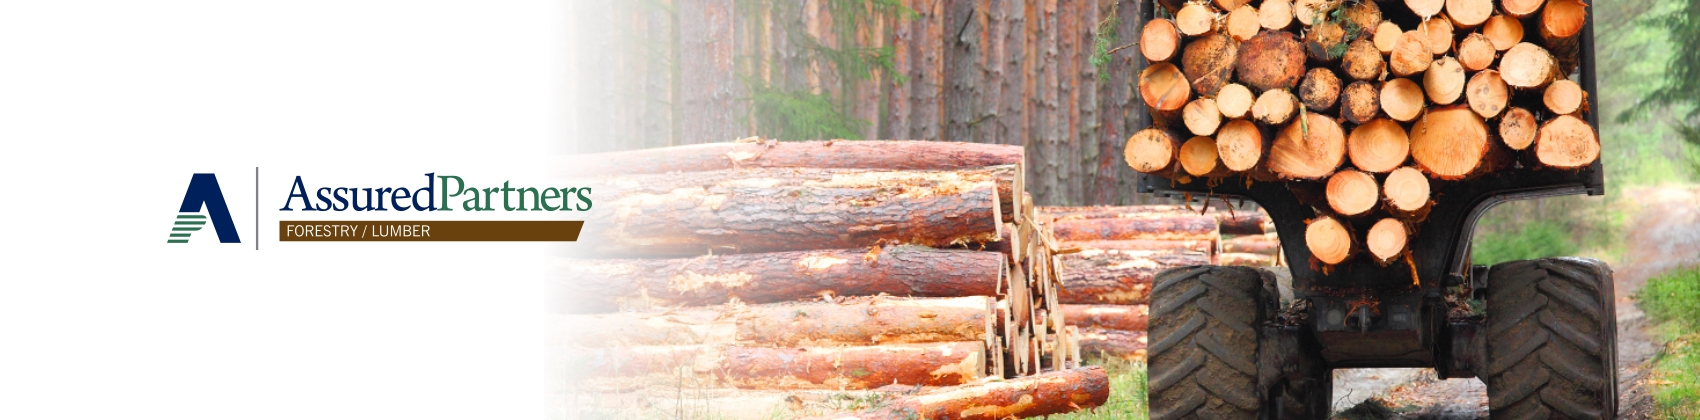 Insurance for forestry companies, forest insurance, forestry insurance, insurance for lumber companies